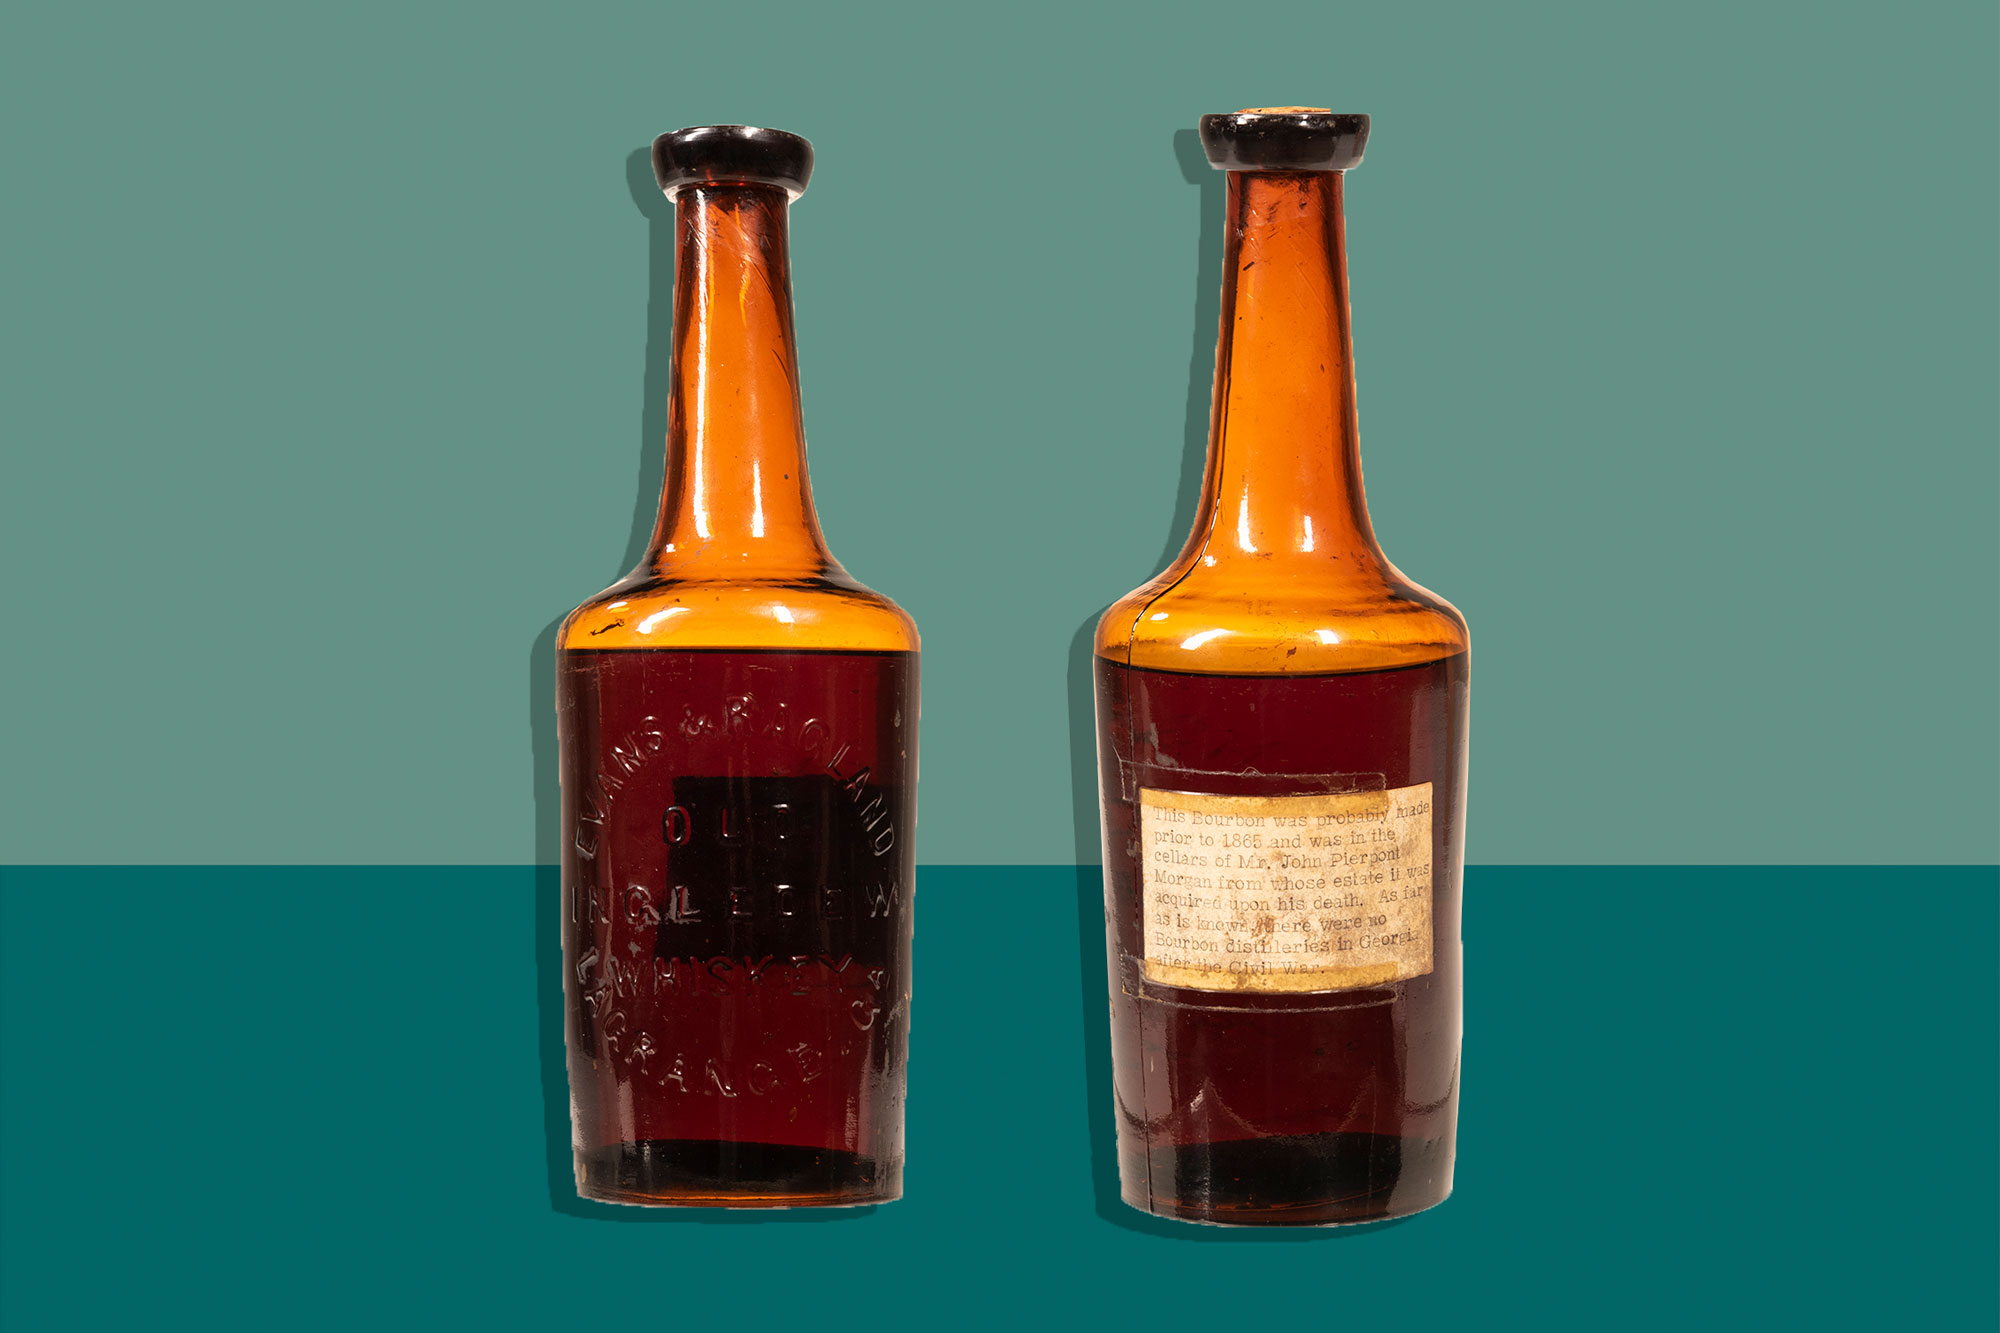 Front and back views of Old Ingledew Whiskey bottle